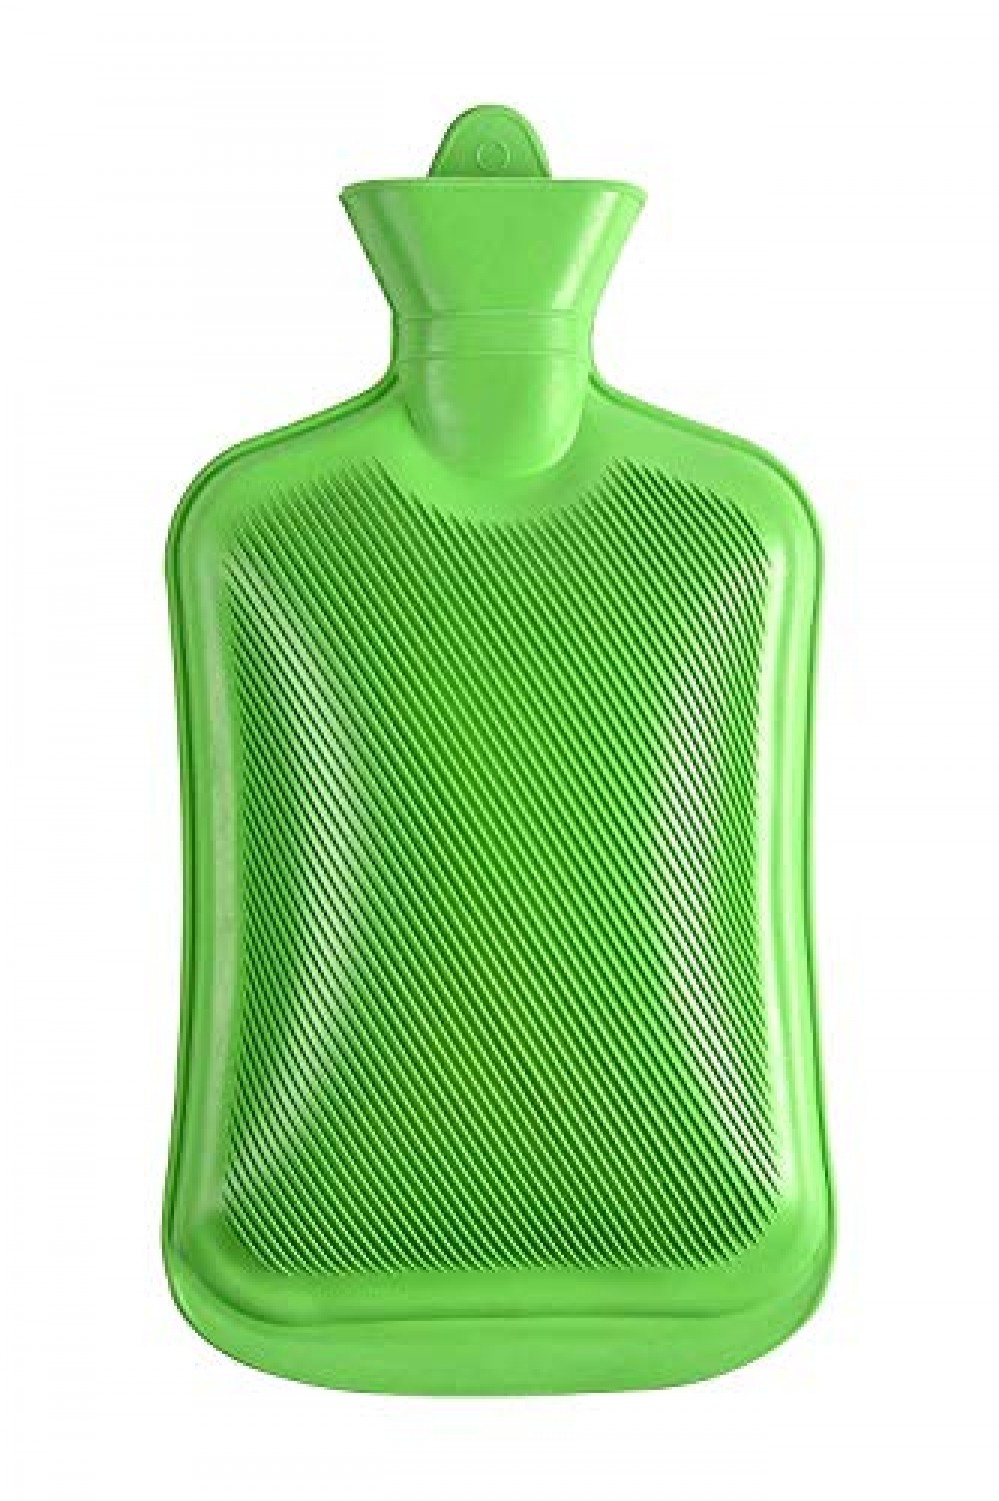 Hot Water Bag for Pain Relief  Rubber Bottle Heating Pad Non Electric Warm Bag for Pain Relief   Pack Of 1   Colour May Vary